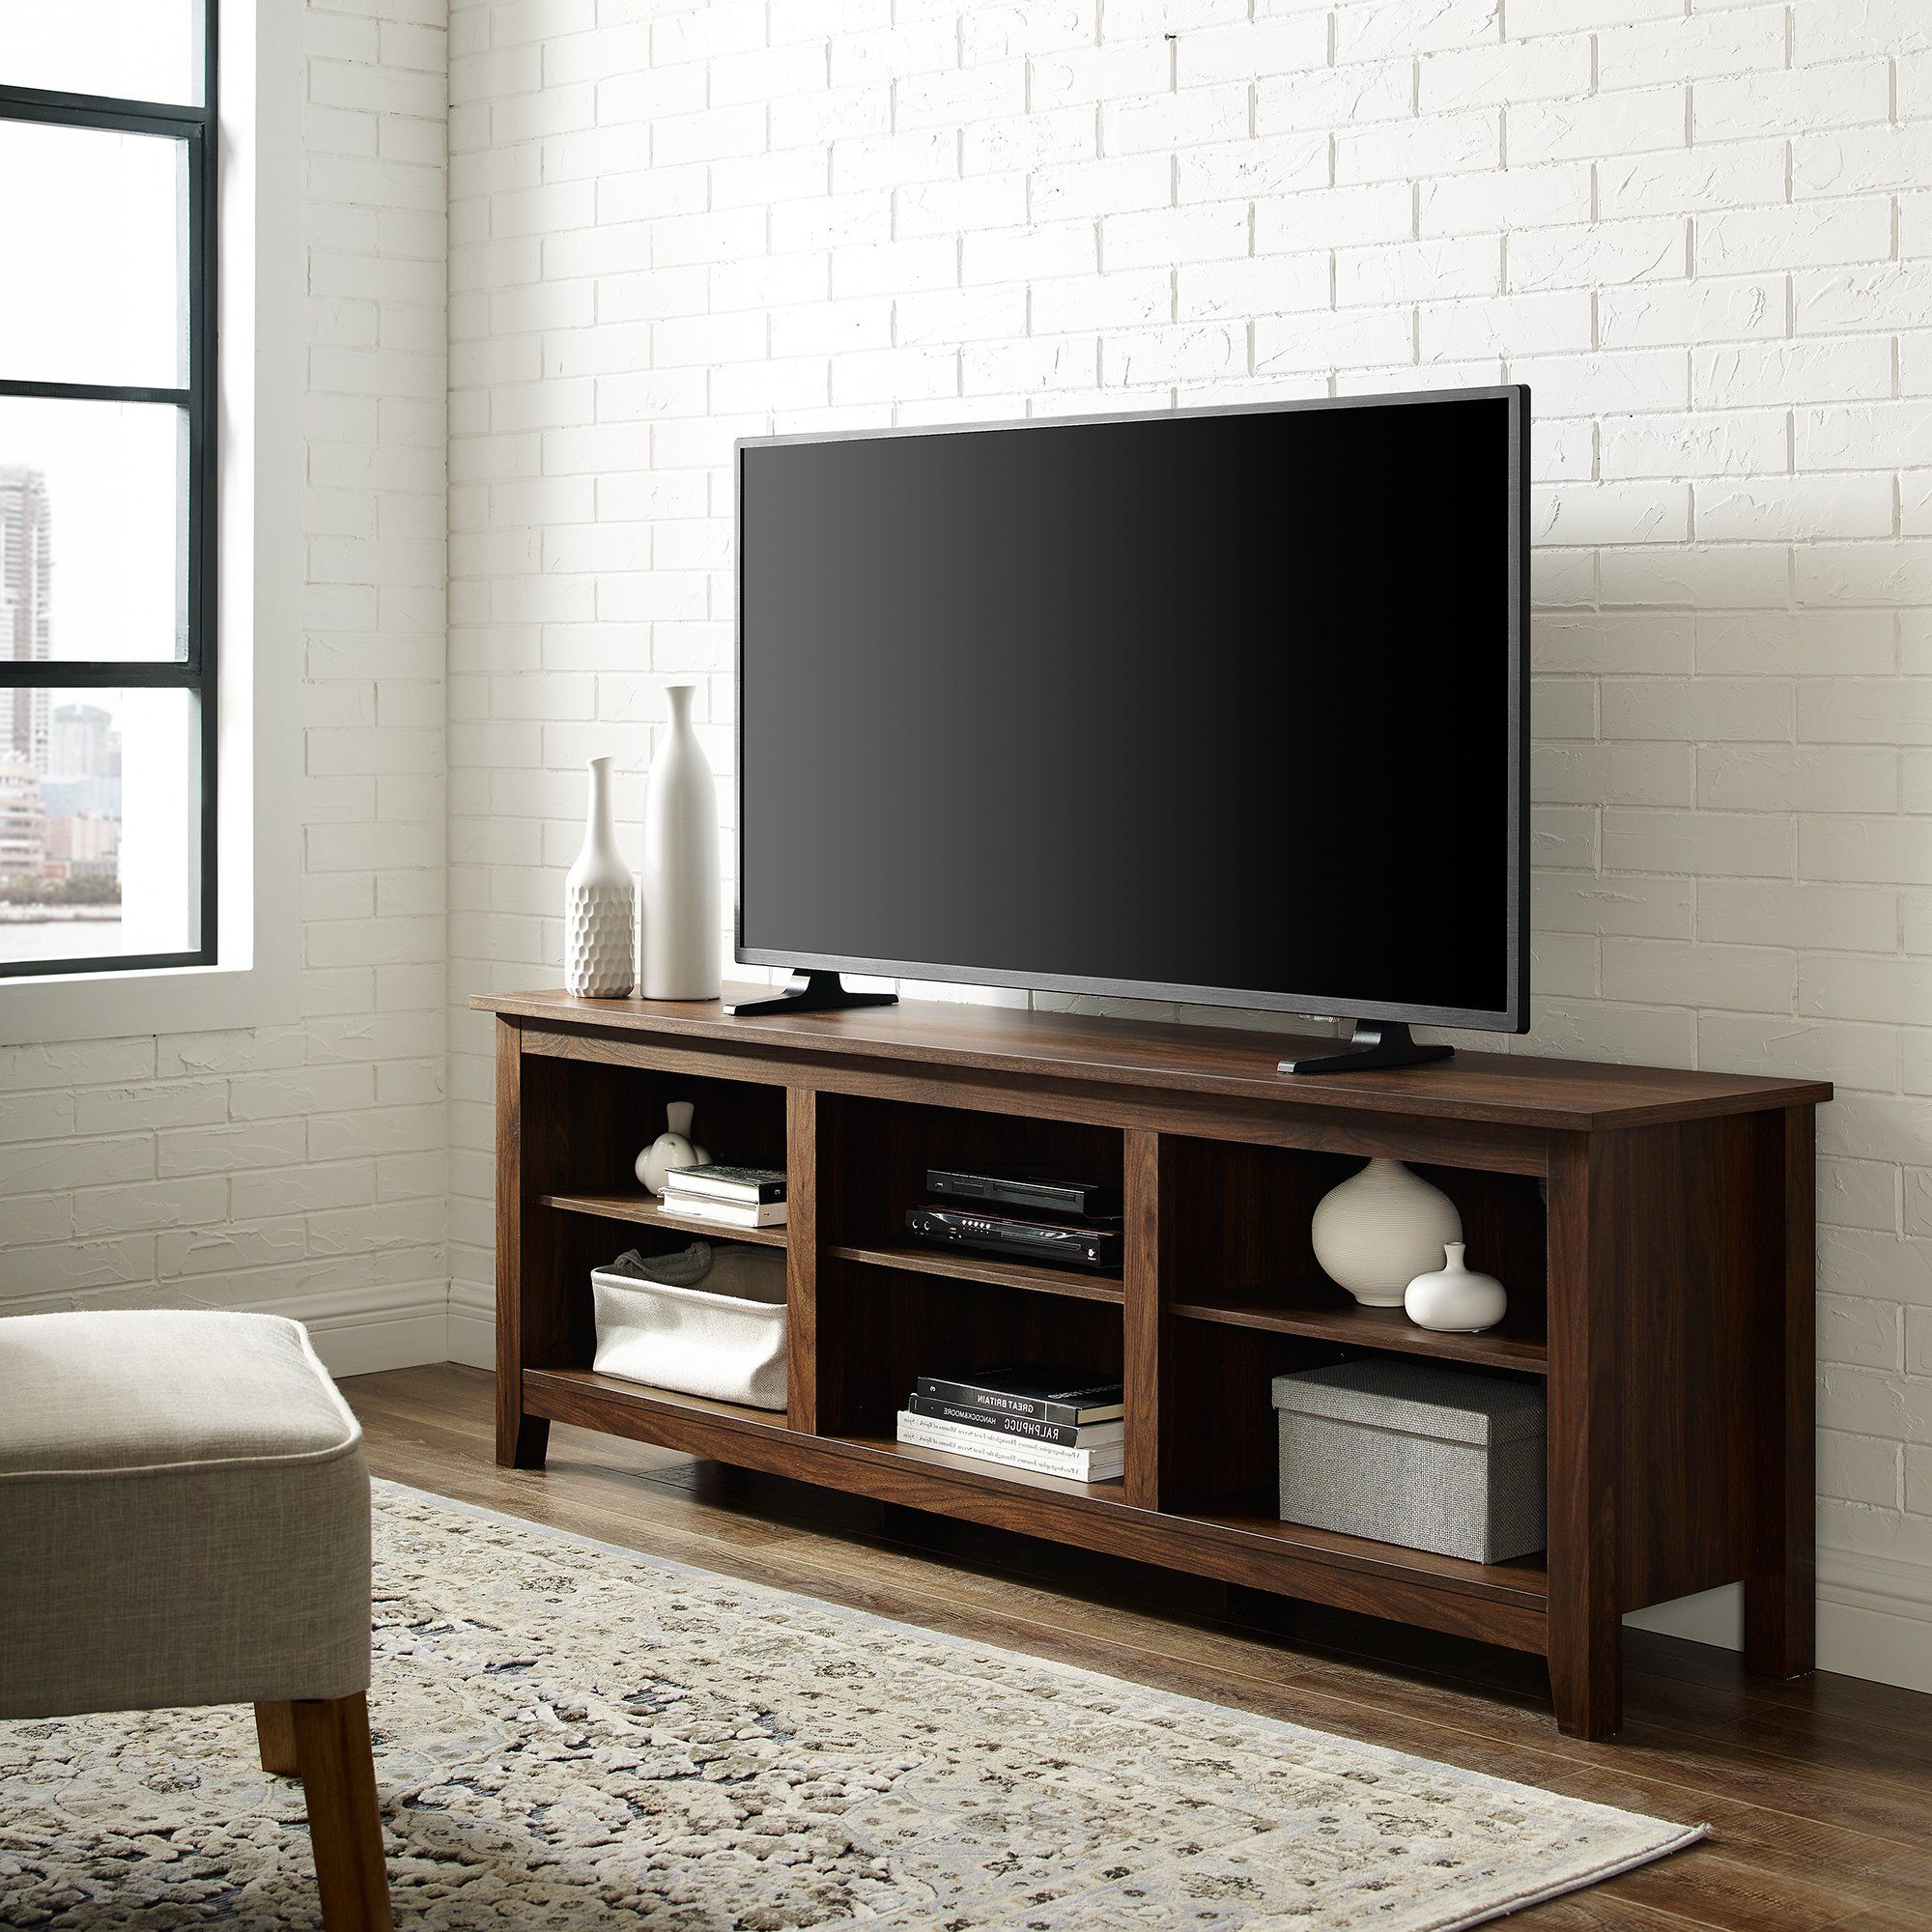 Woven Paths Open Storage Tv Stand For Tvs Up To 80 With Regard To Woven Paths Open Storage Tv Stands With Multiple Finishes (View 2 of 20)